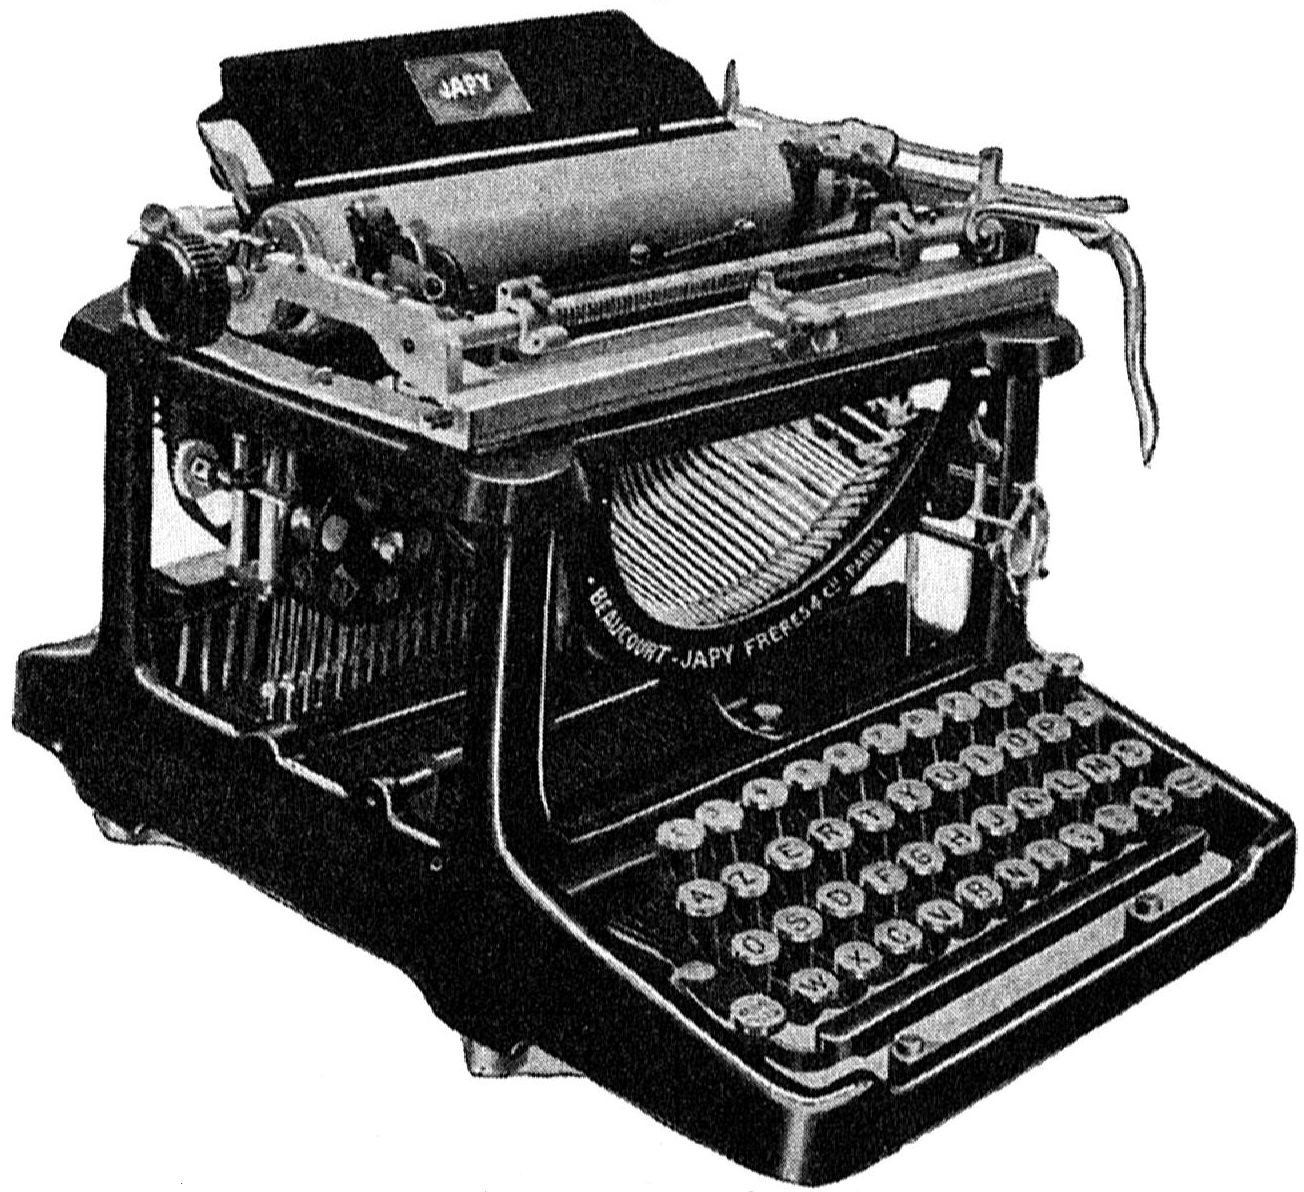 christopher latham sholes father of the Christopher sholes ' typewriter  in 1863 a wisconsin printer named christopher latham sholes was  christopher latham sholes, known as the father.